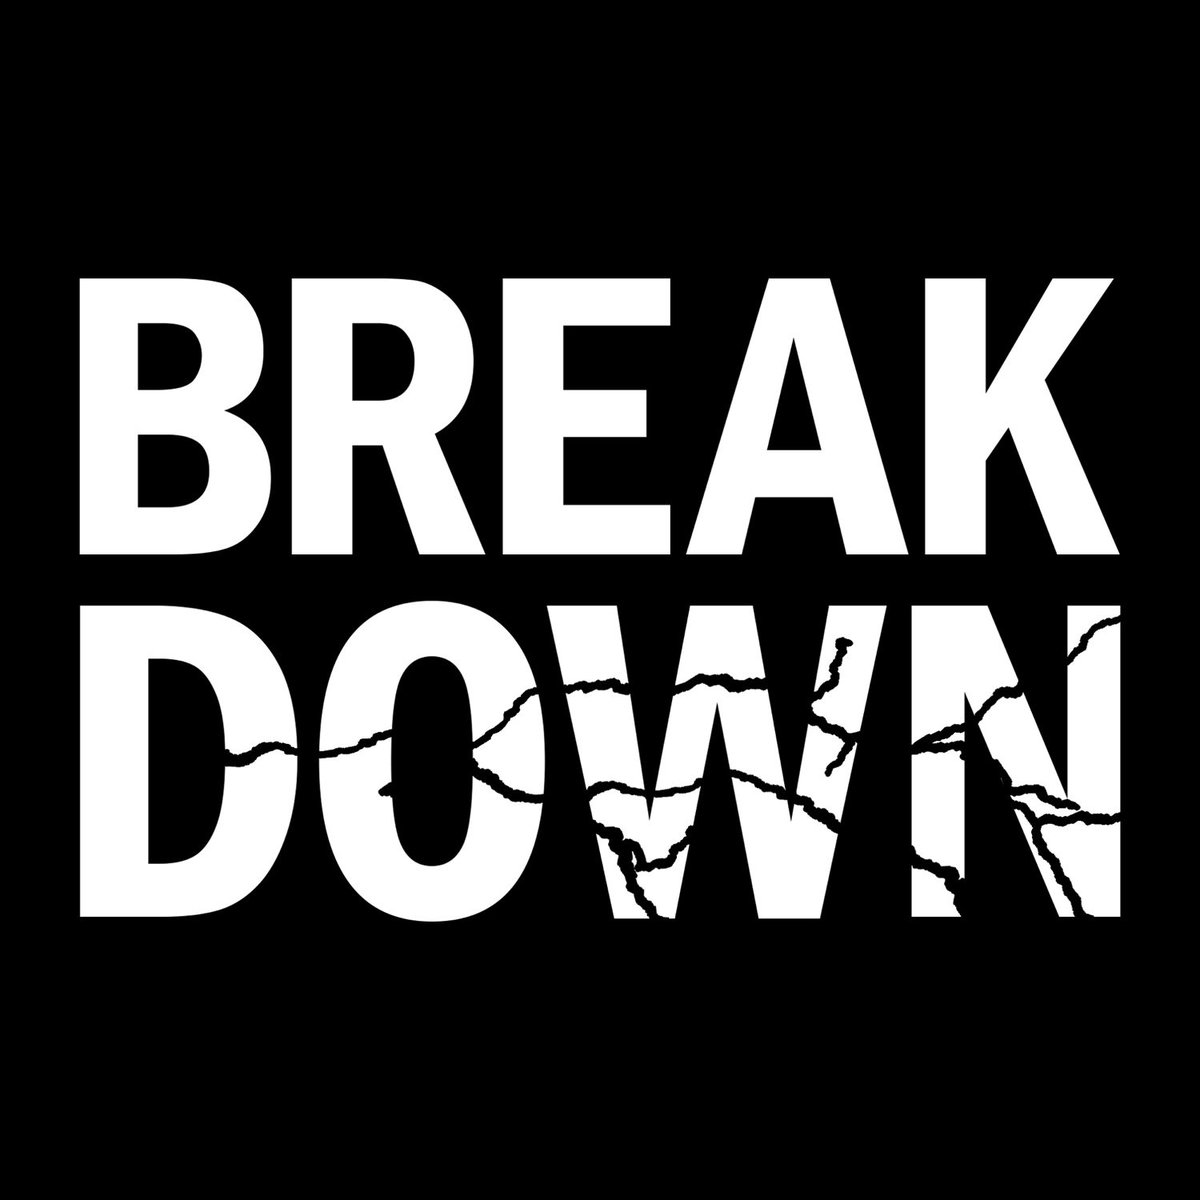 #Breakdown podcast and chill. Add that to your snow day agenda 👉 https://t.co/PEZ8lpQcSN #TrueCrime